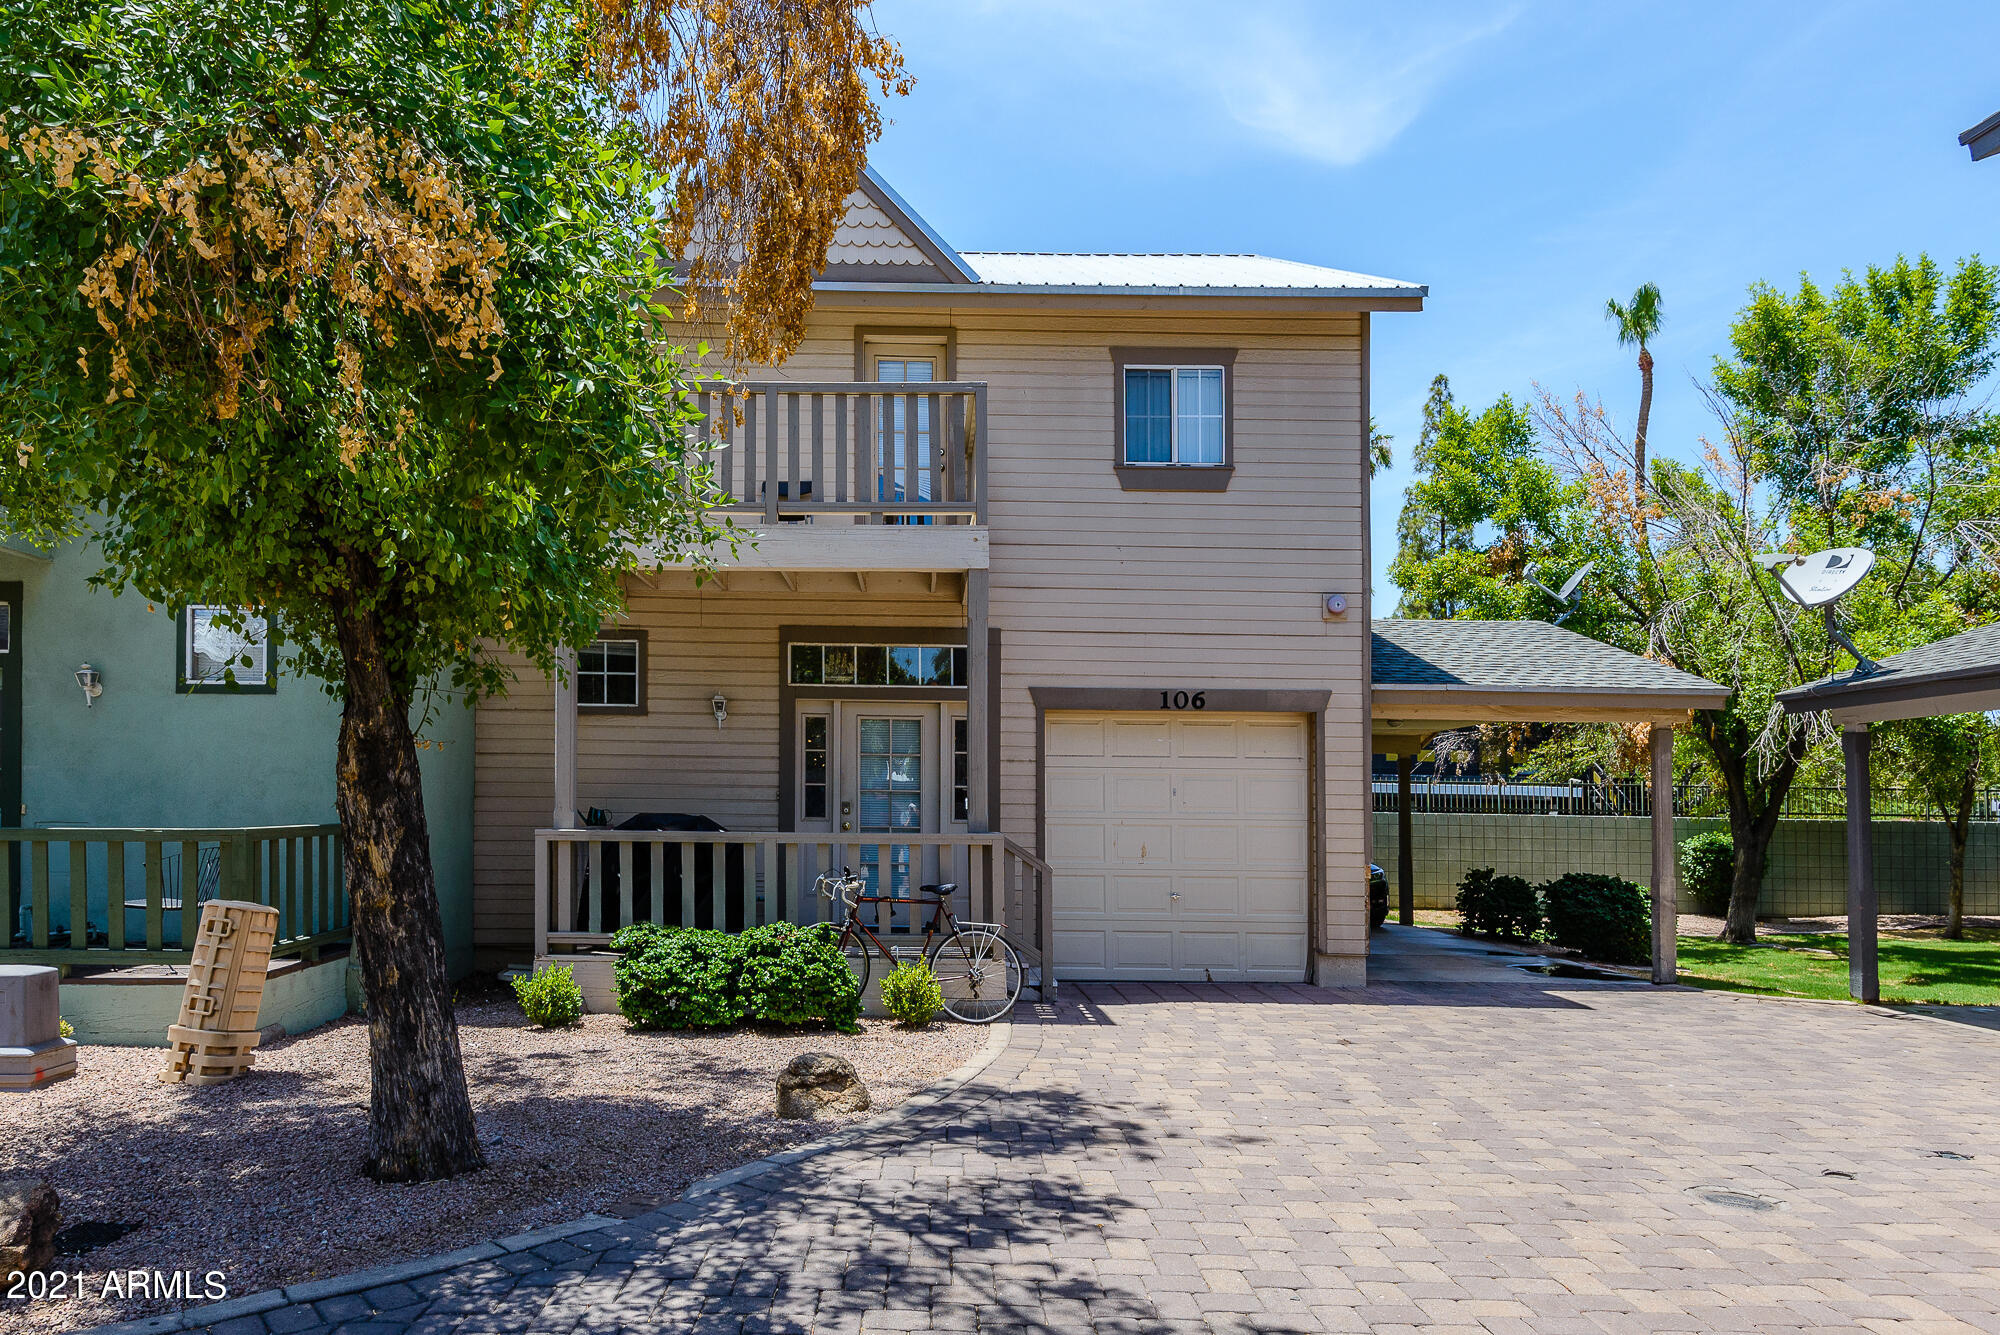 2016 S HAMMOND Drive # 106, Tempe, AZ 85282, 4 Bedrooms Bedrooms, ,Residential,For Sale,2016 S HAMMOND Drive # 106,6261201